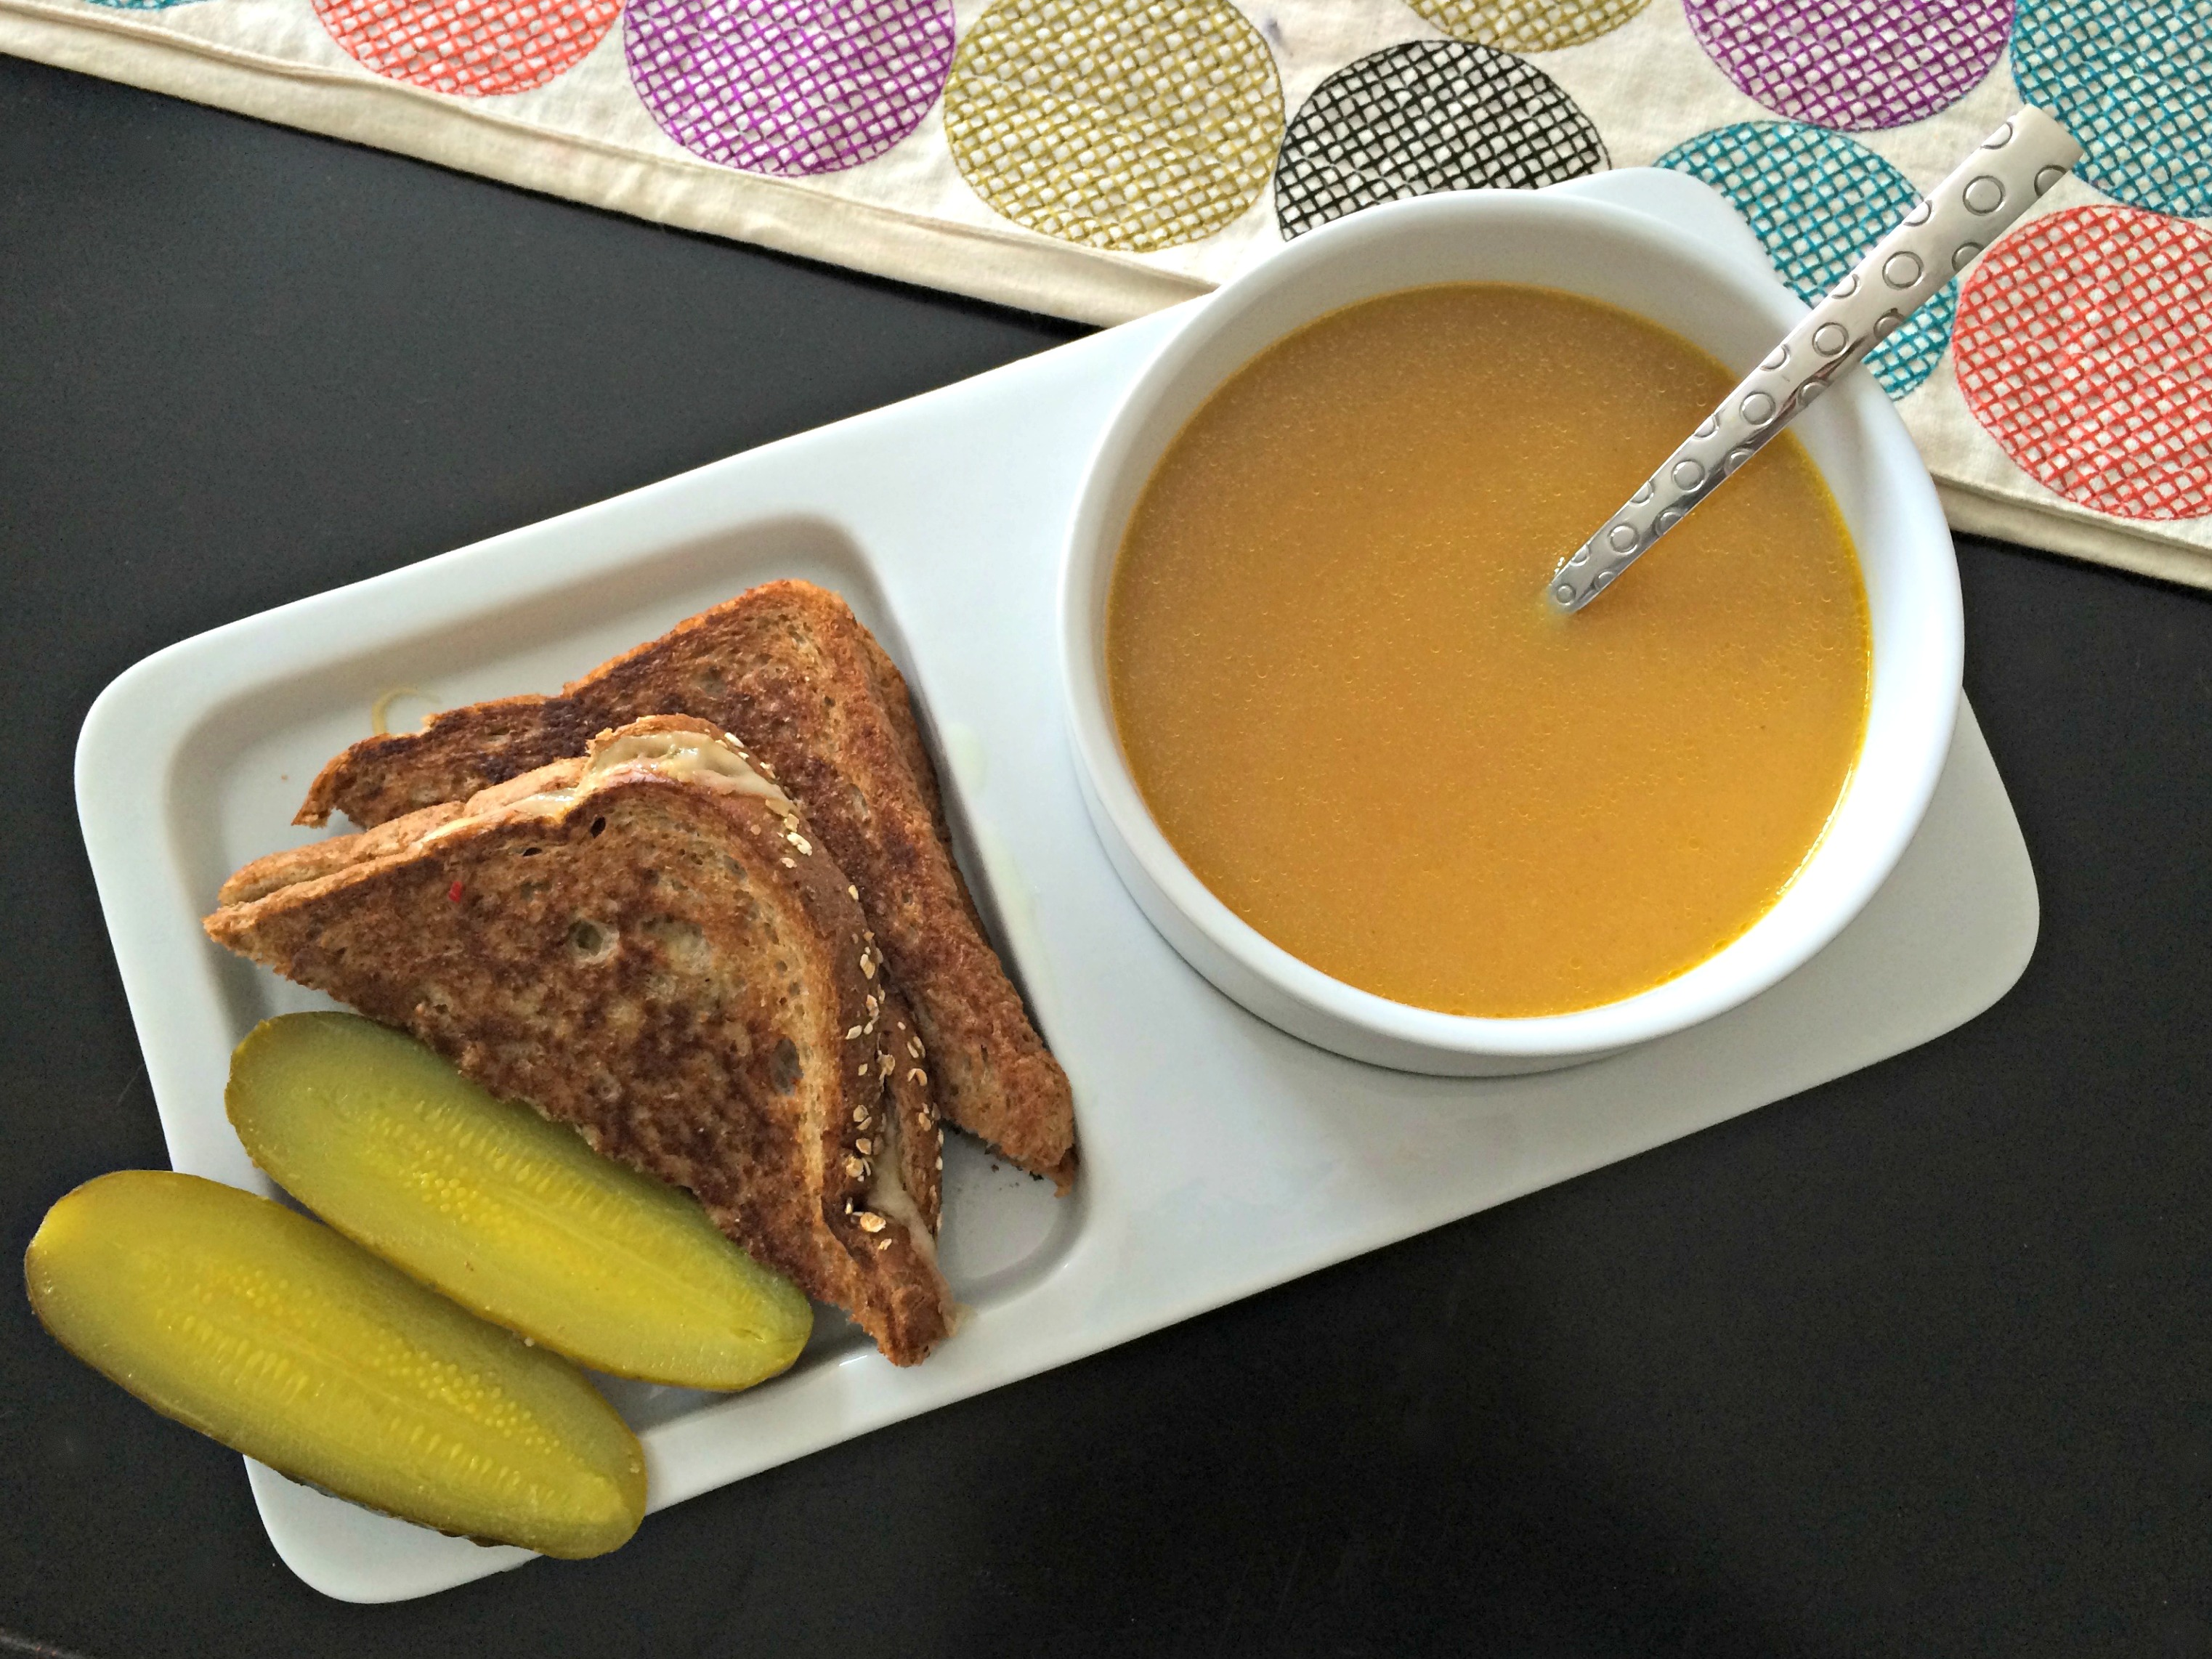 Grilled cheese and butternut squash soup